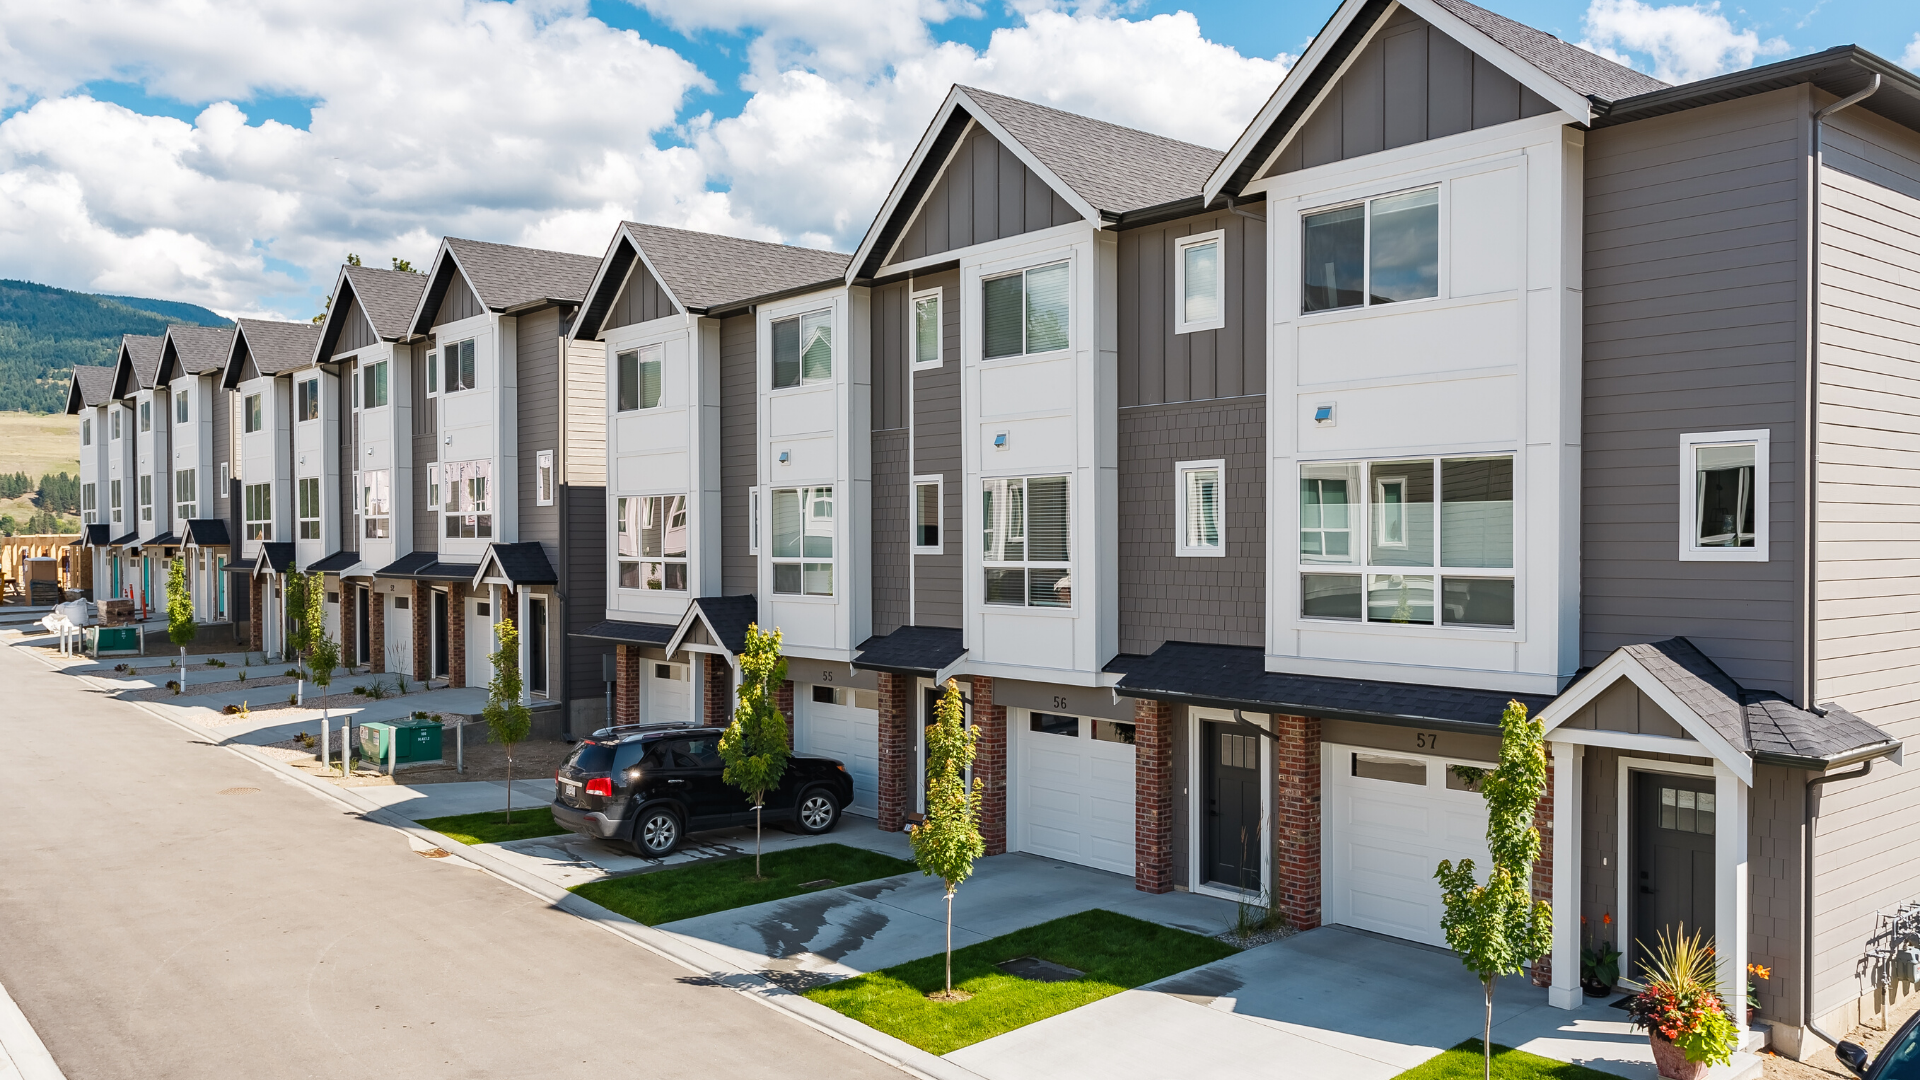 Lake Country Townhomes. Starting from $464,900